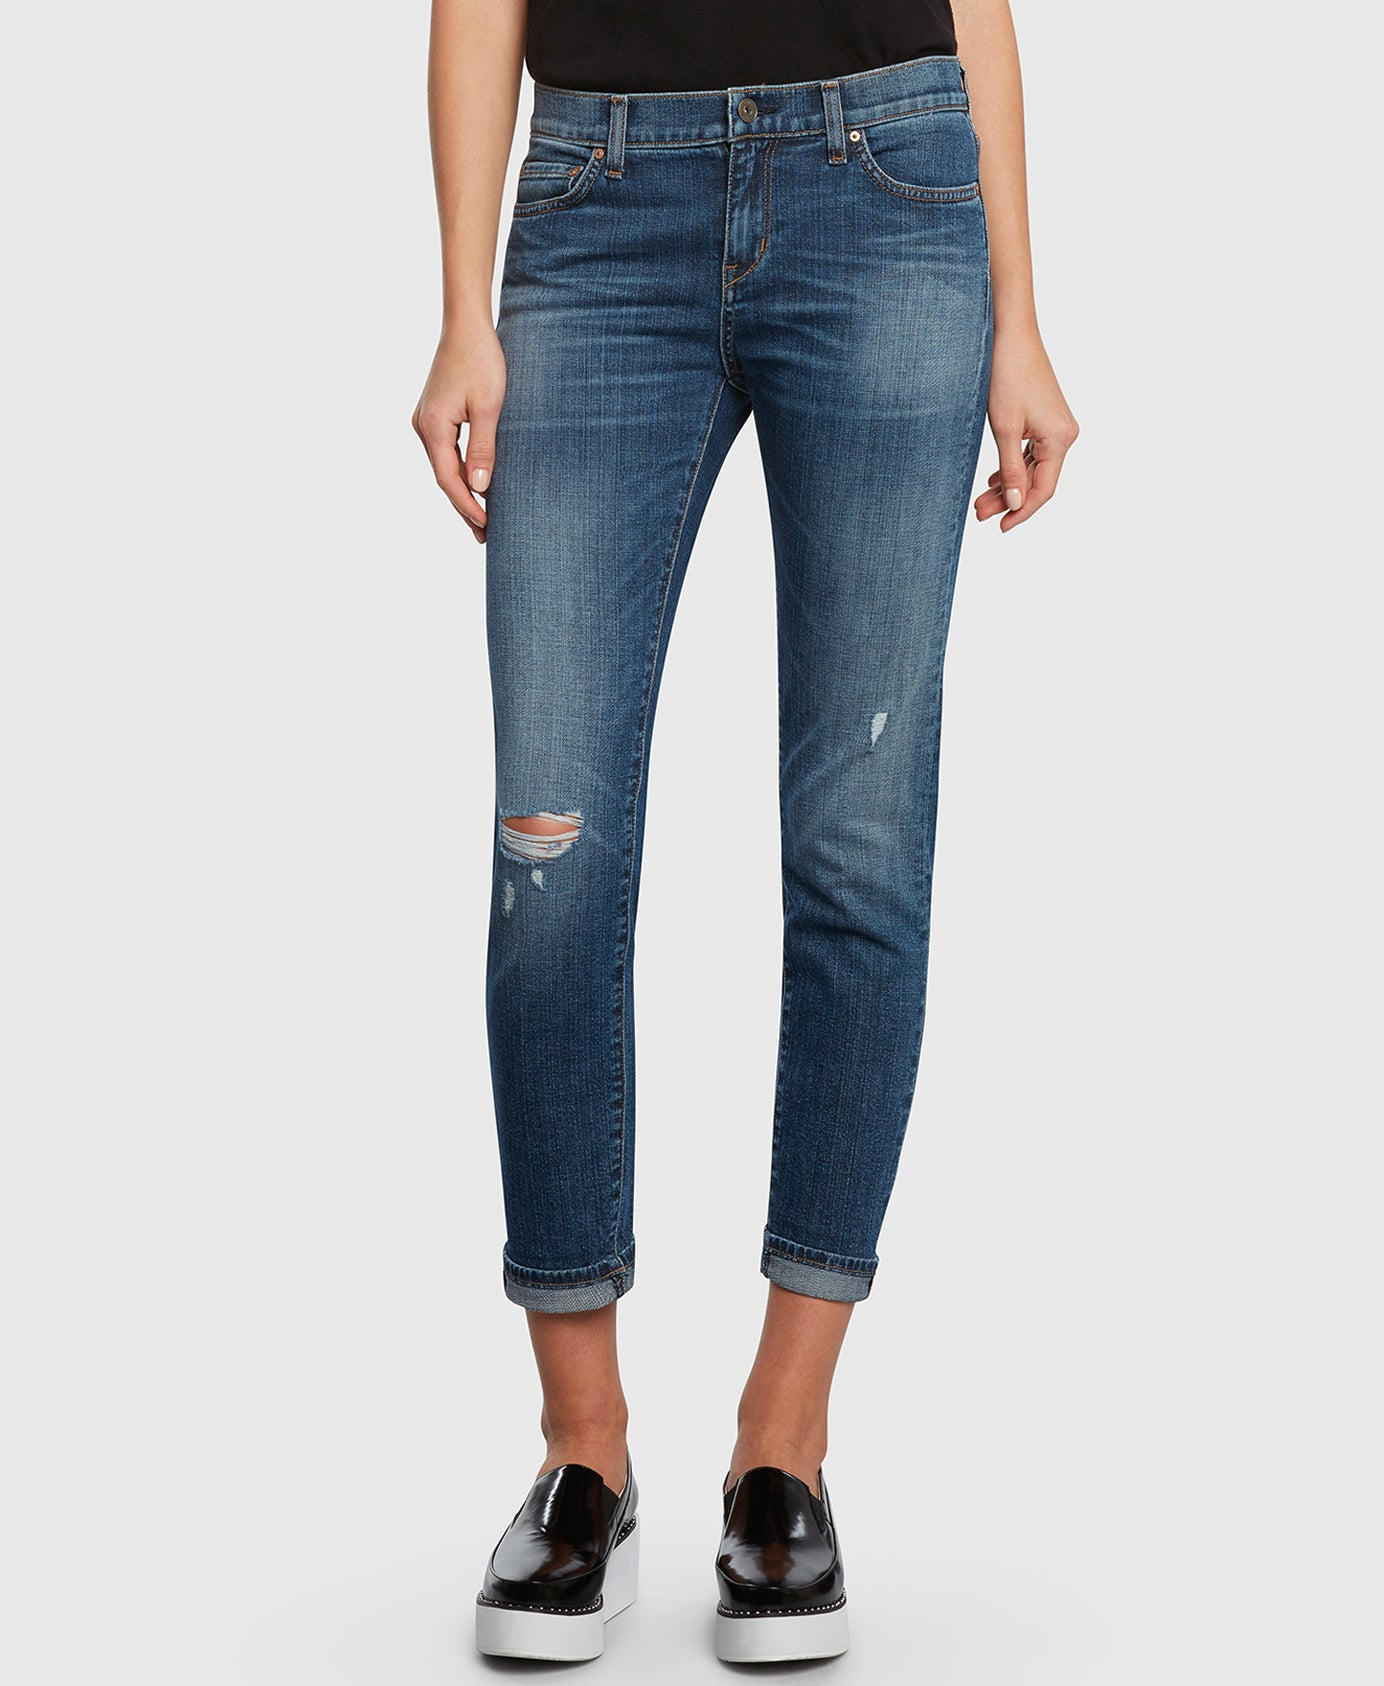 Principle FAVORITE in Movin' On boyfriend jeans detail